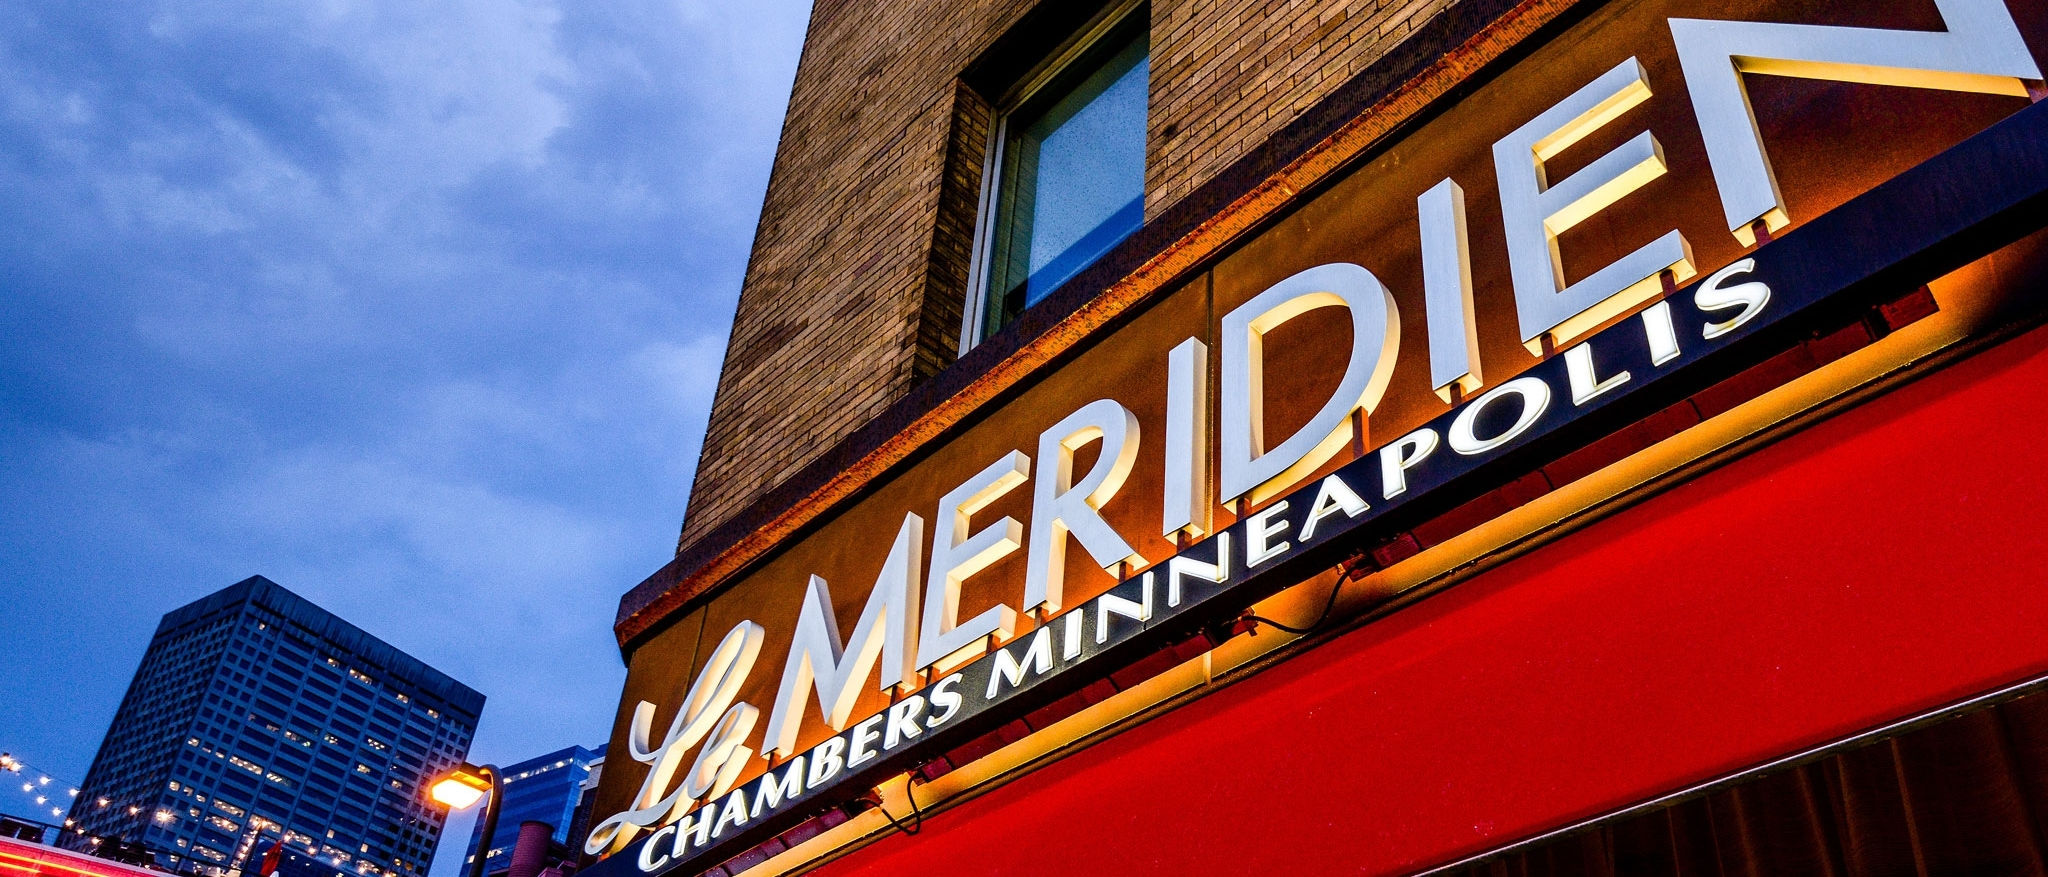 Le Meridien Chambers Minneapolis Hotel  - Exterior